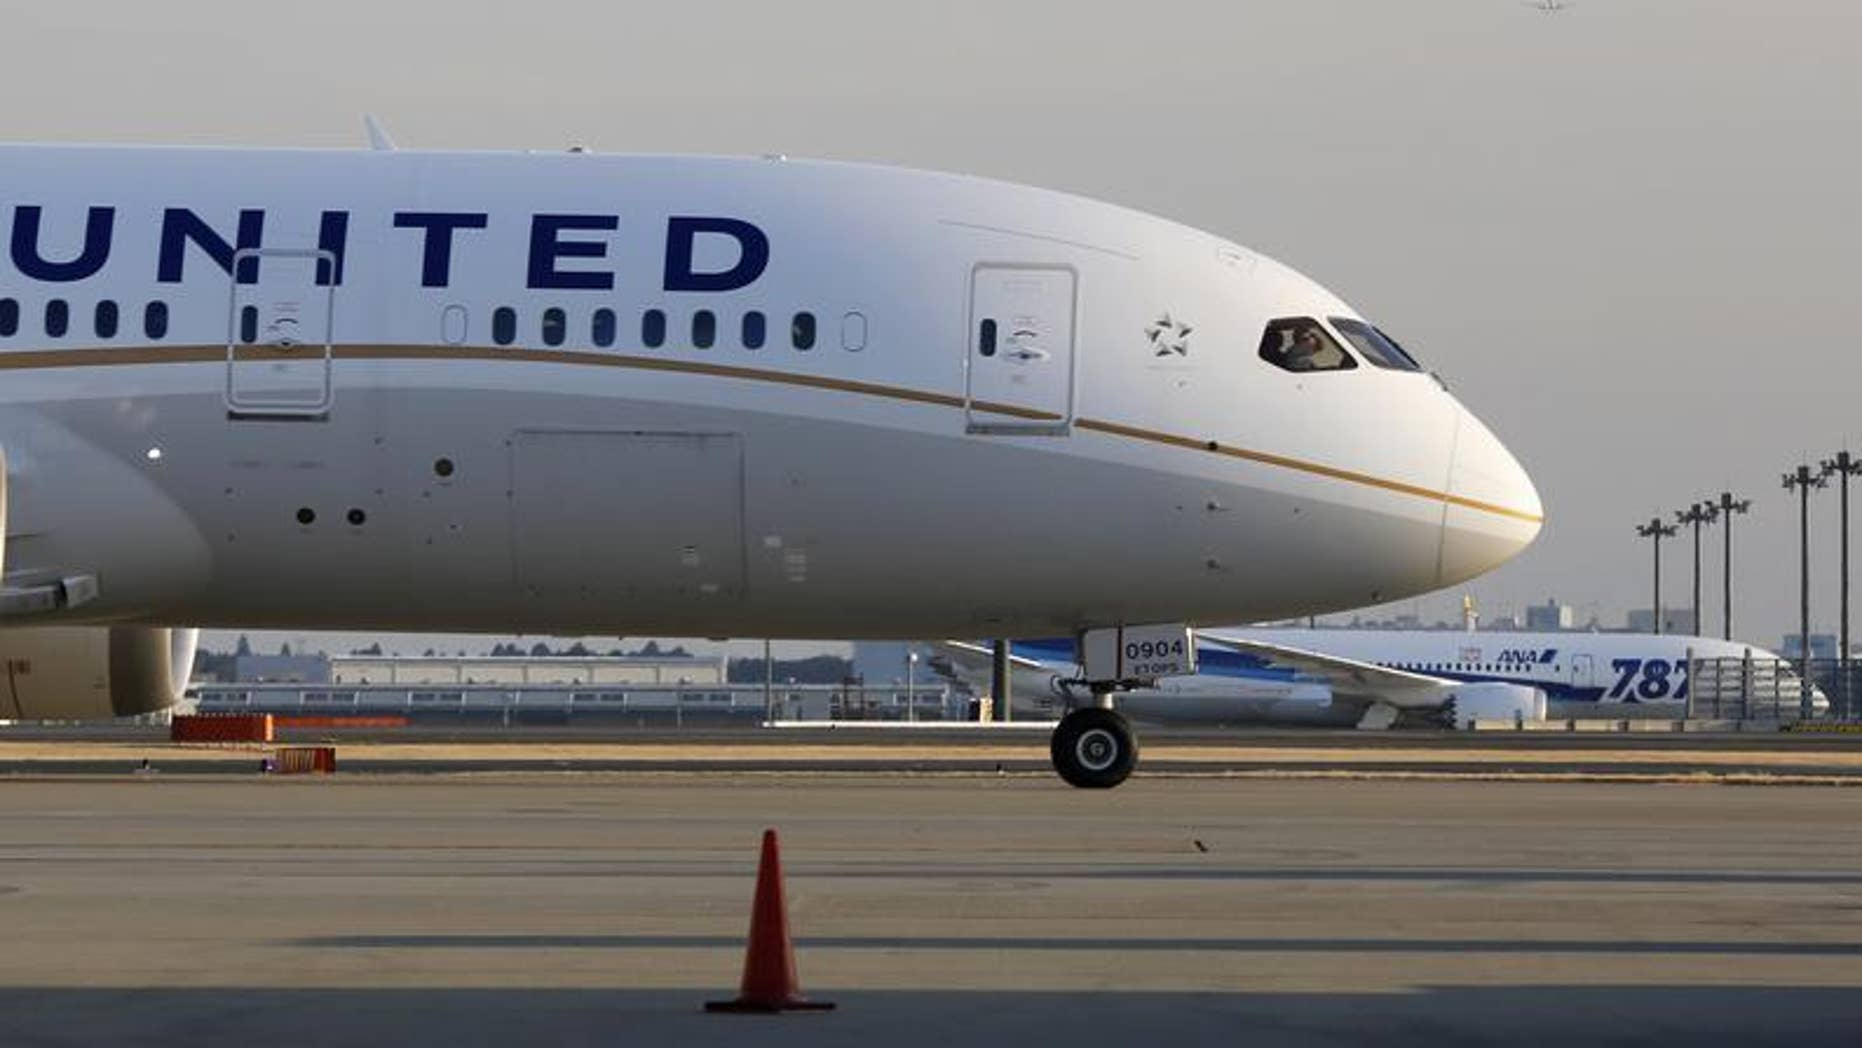 A United Airlines' Boeing Co's 787 Dreamliner plane (front) taxis after landing following its flight from Los Angeles, in front of an All Nippon Airways' (ANA) Boeing Co's 787 Dreamliner plane waiting for checks at New Tokyo international airport in Narita, east of Tokyo January 17, 2013. REUTERS/Toru Hanai